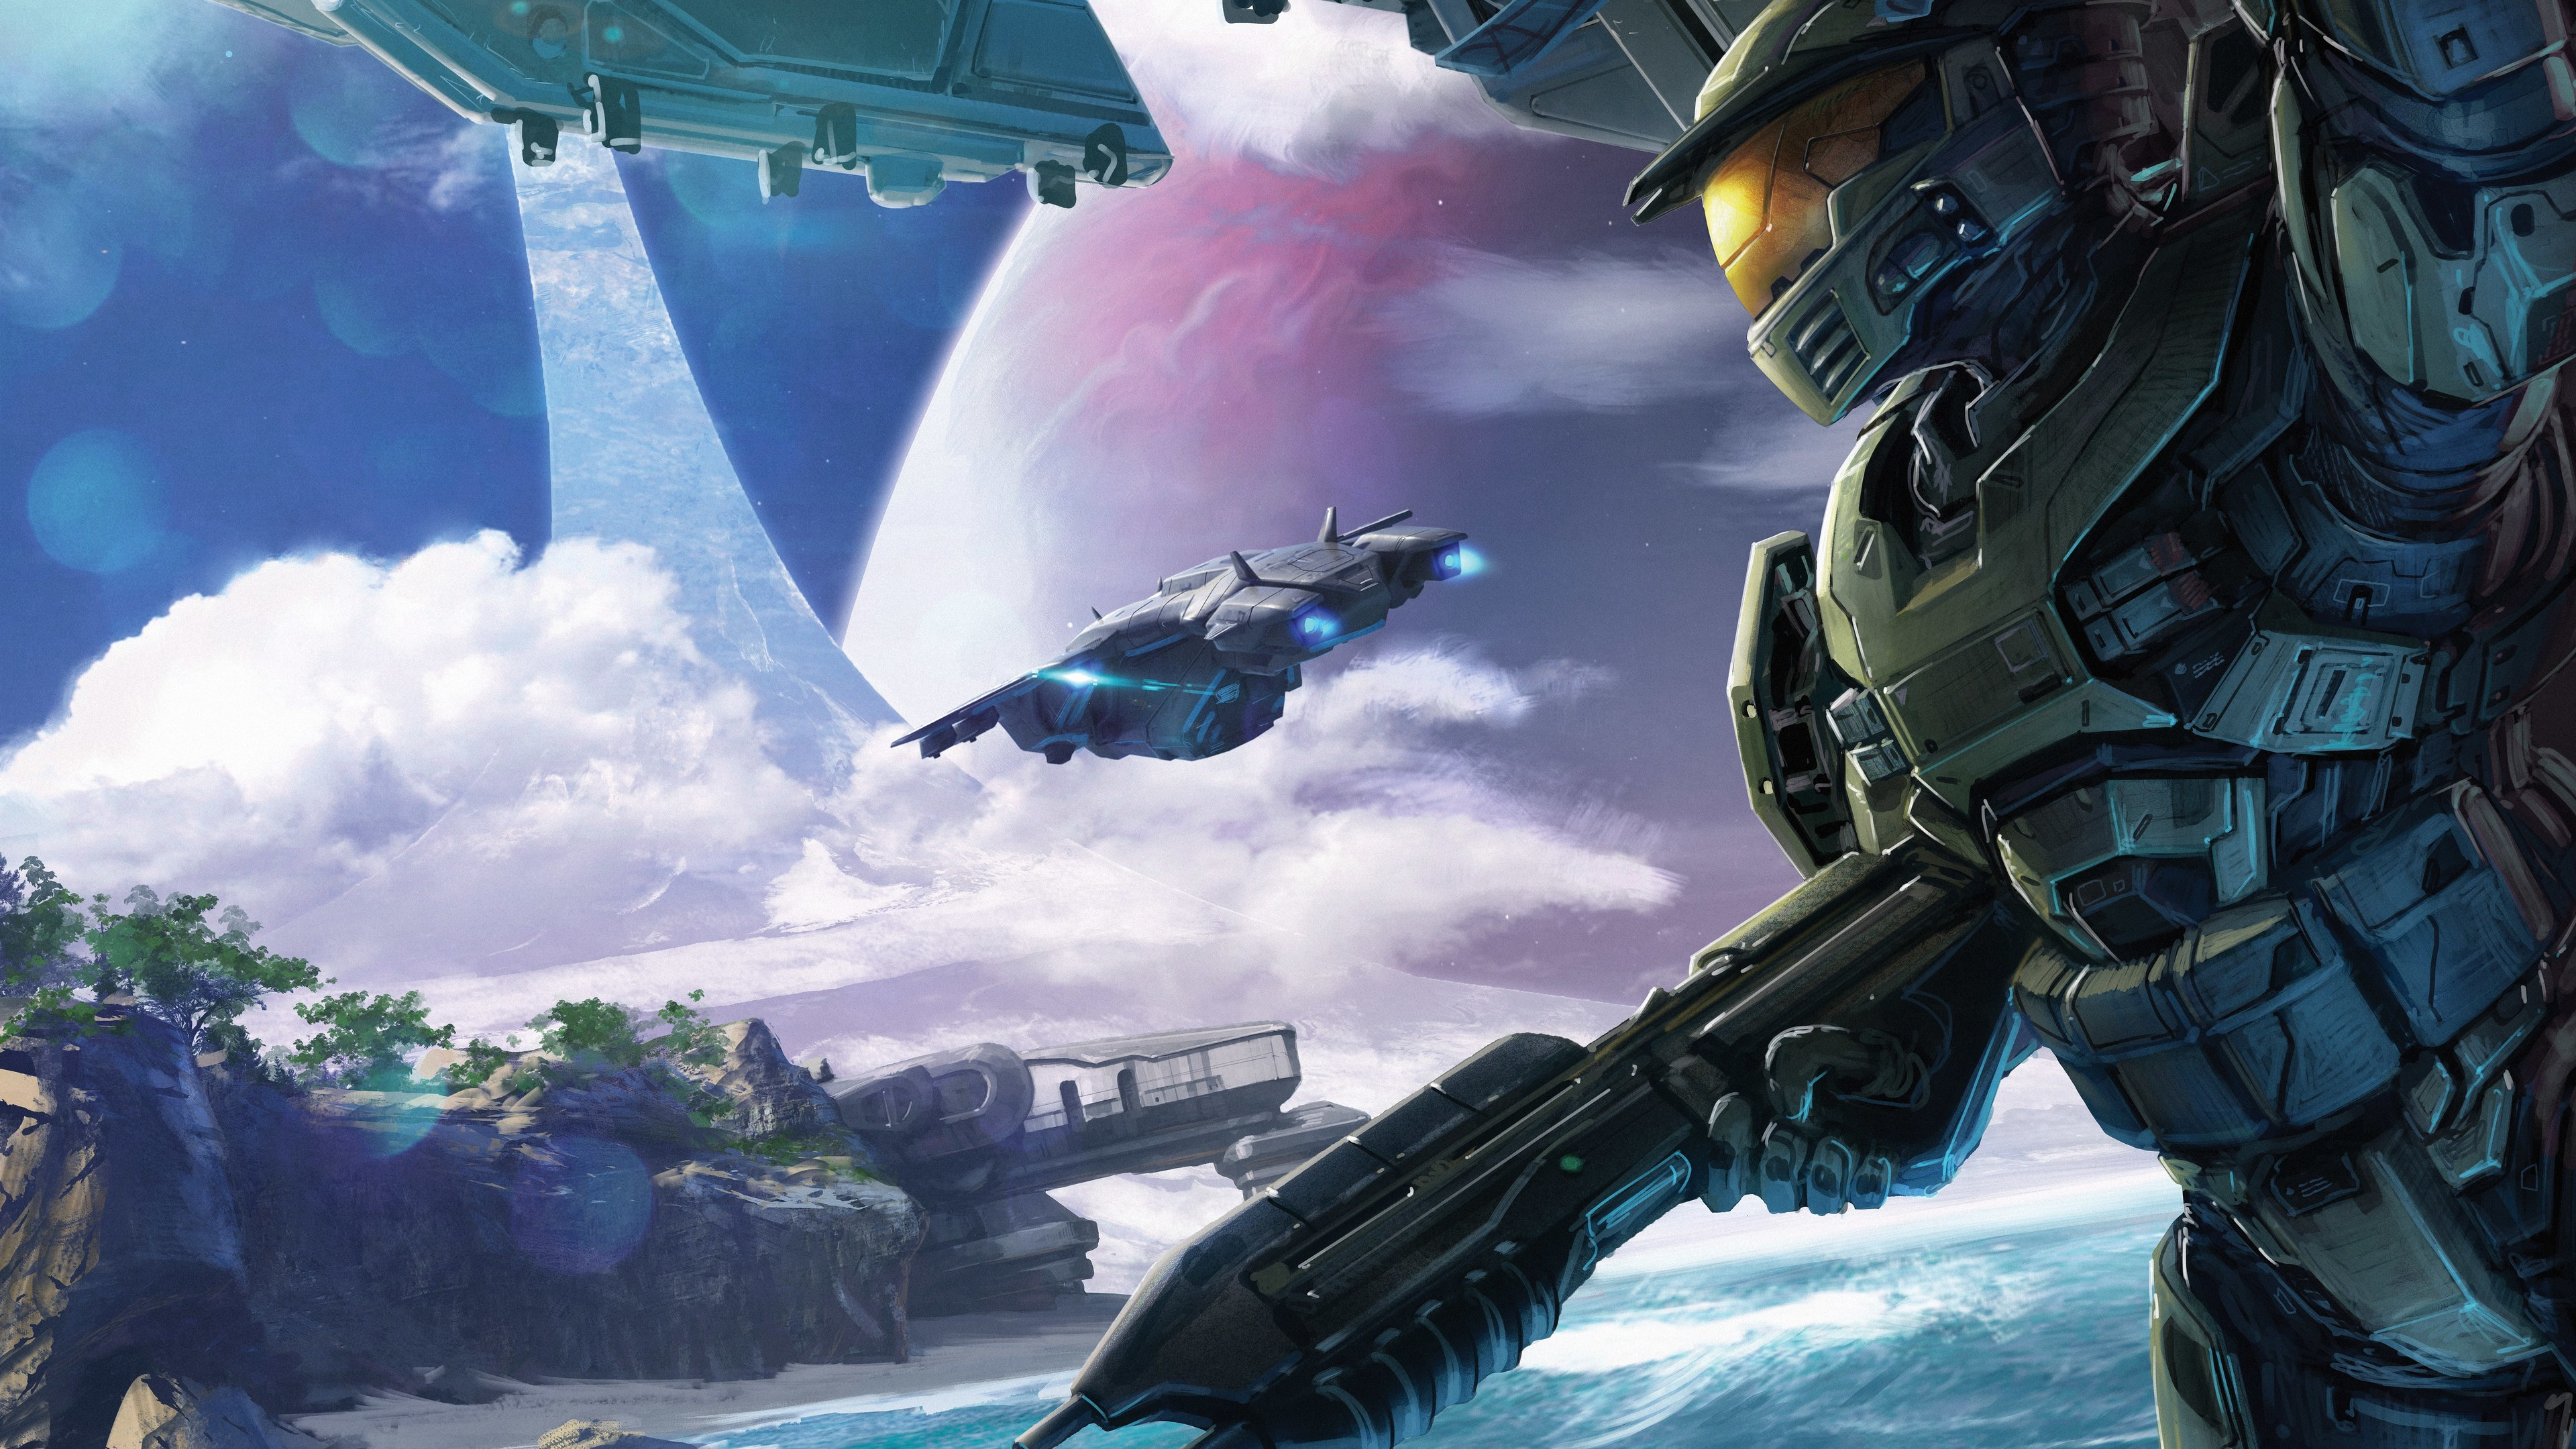 Wallpaper 4k Halo Conflict Artwork 5k 4k Wallpapers 5k